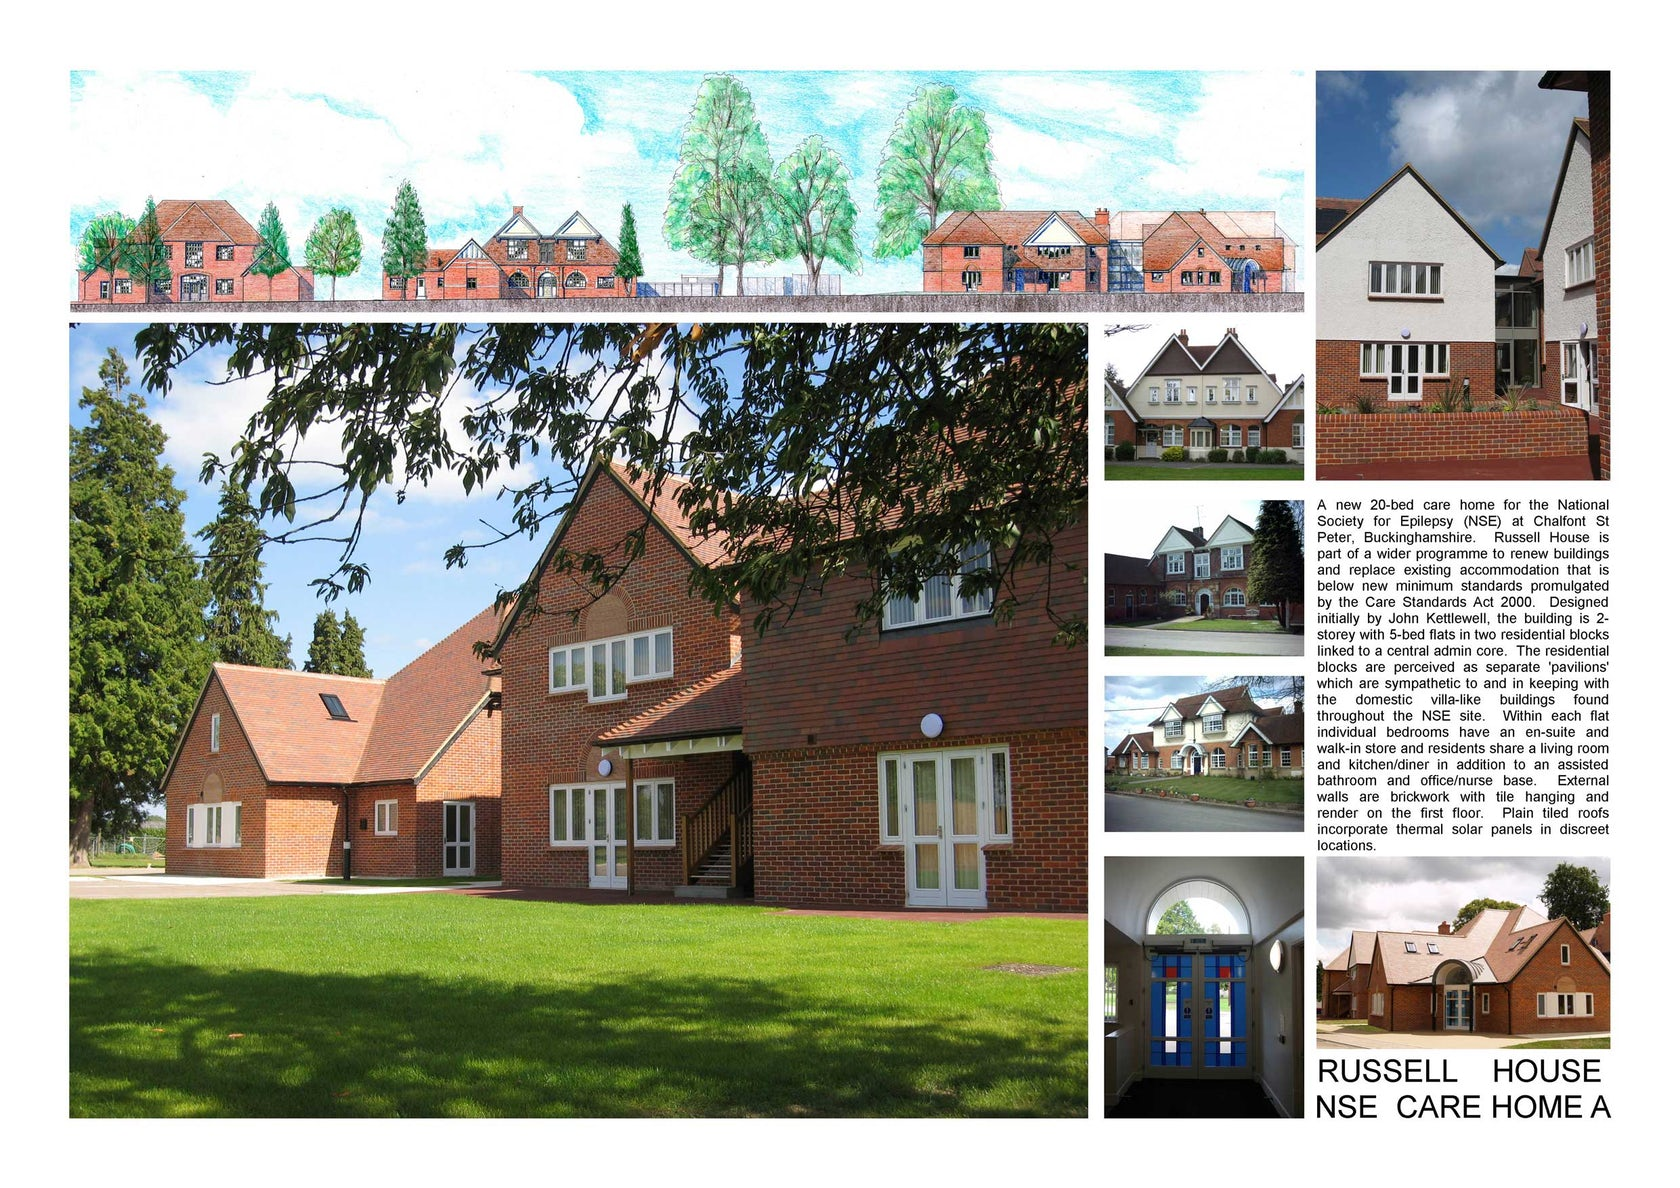 New Care Home Chalfont St Peter